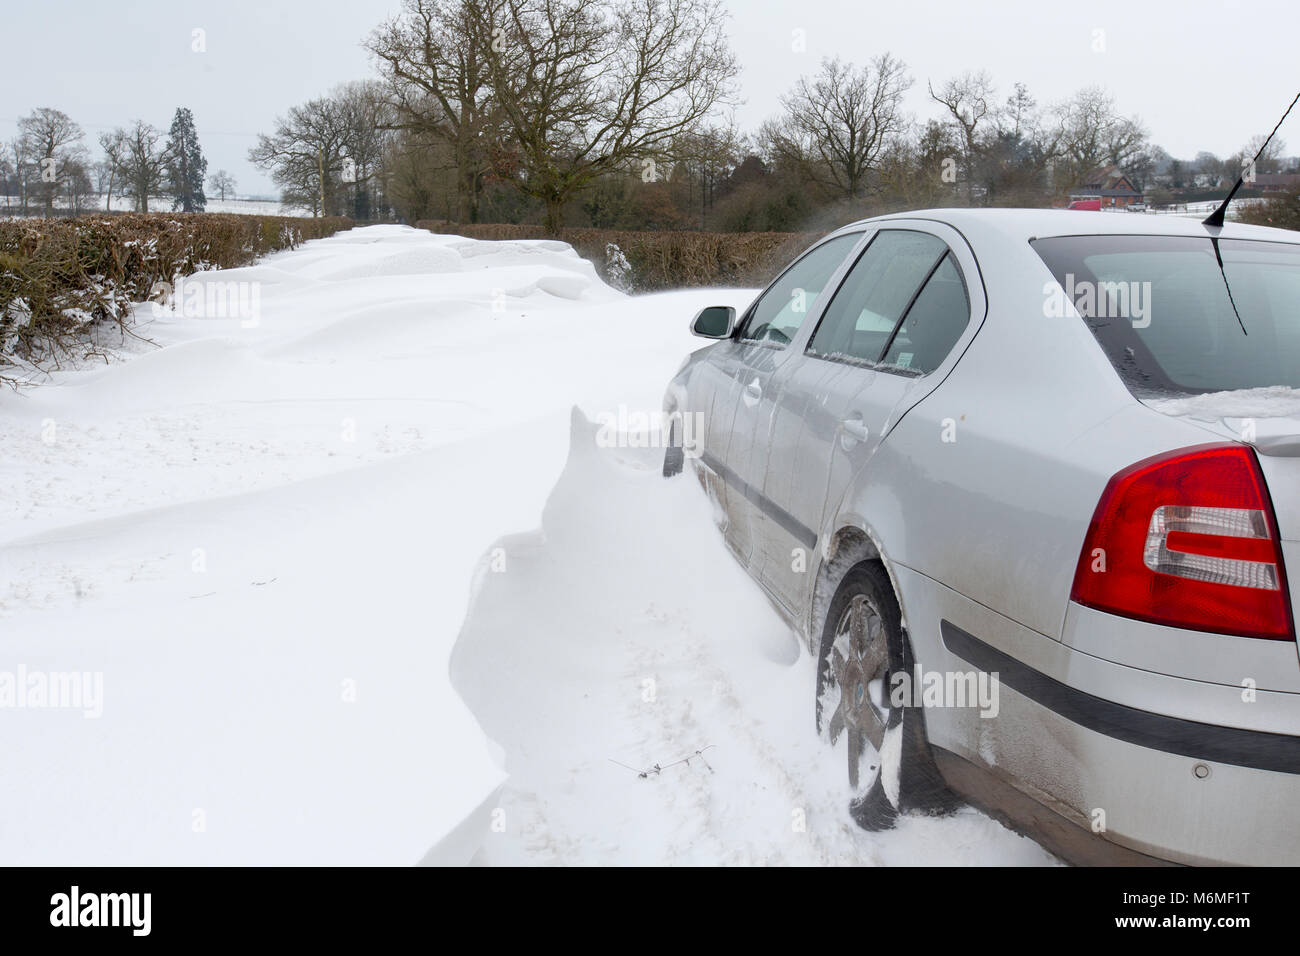 A car stuck in a snow drift in a country lane in Redditch, UK - Stock Image